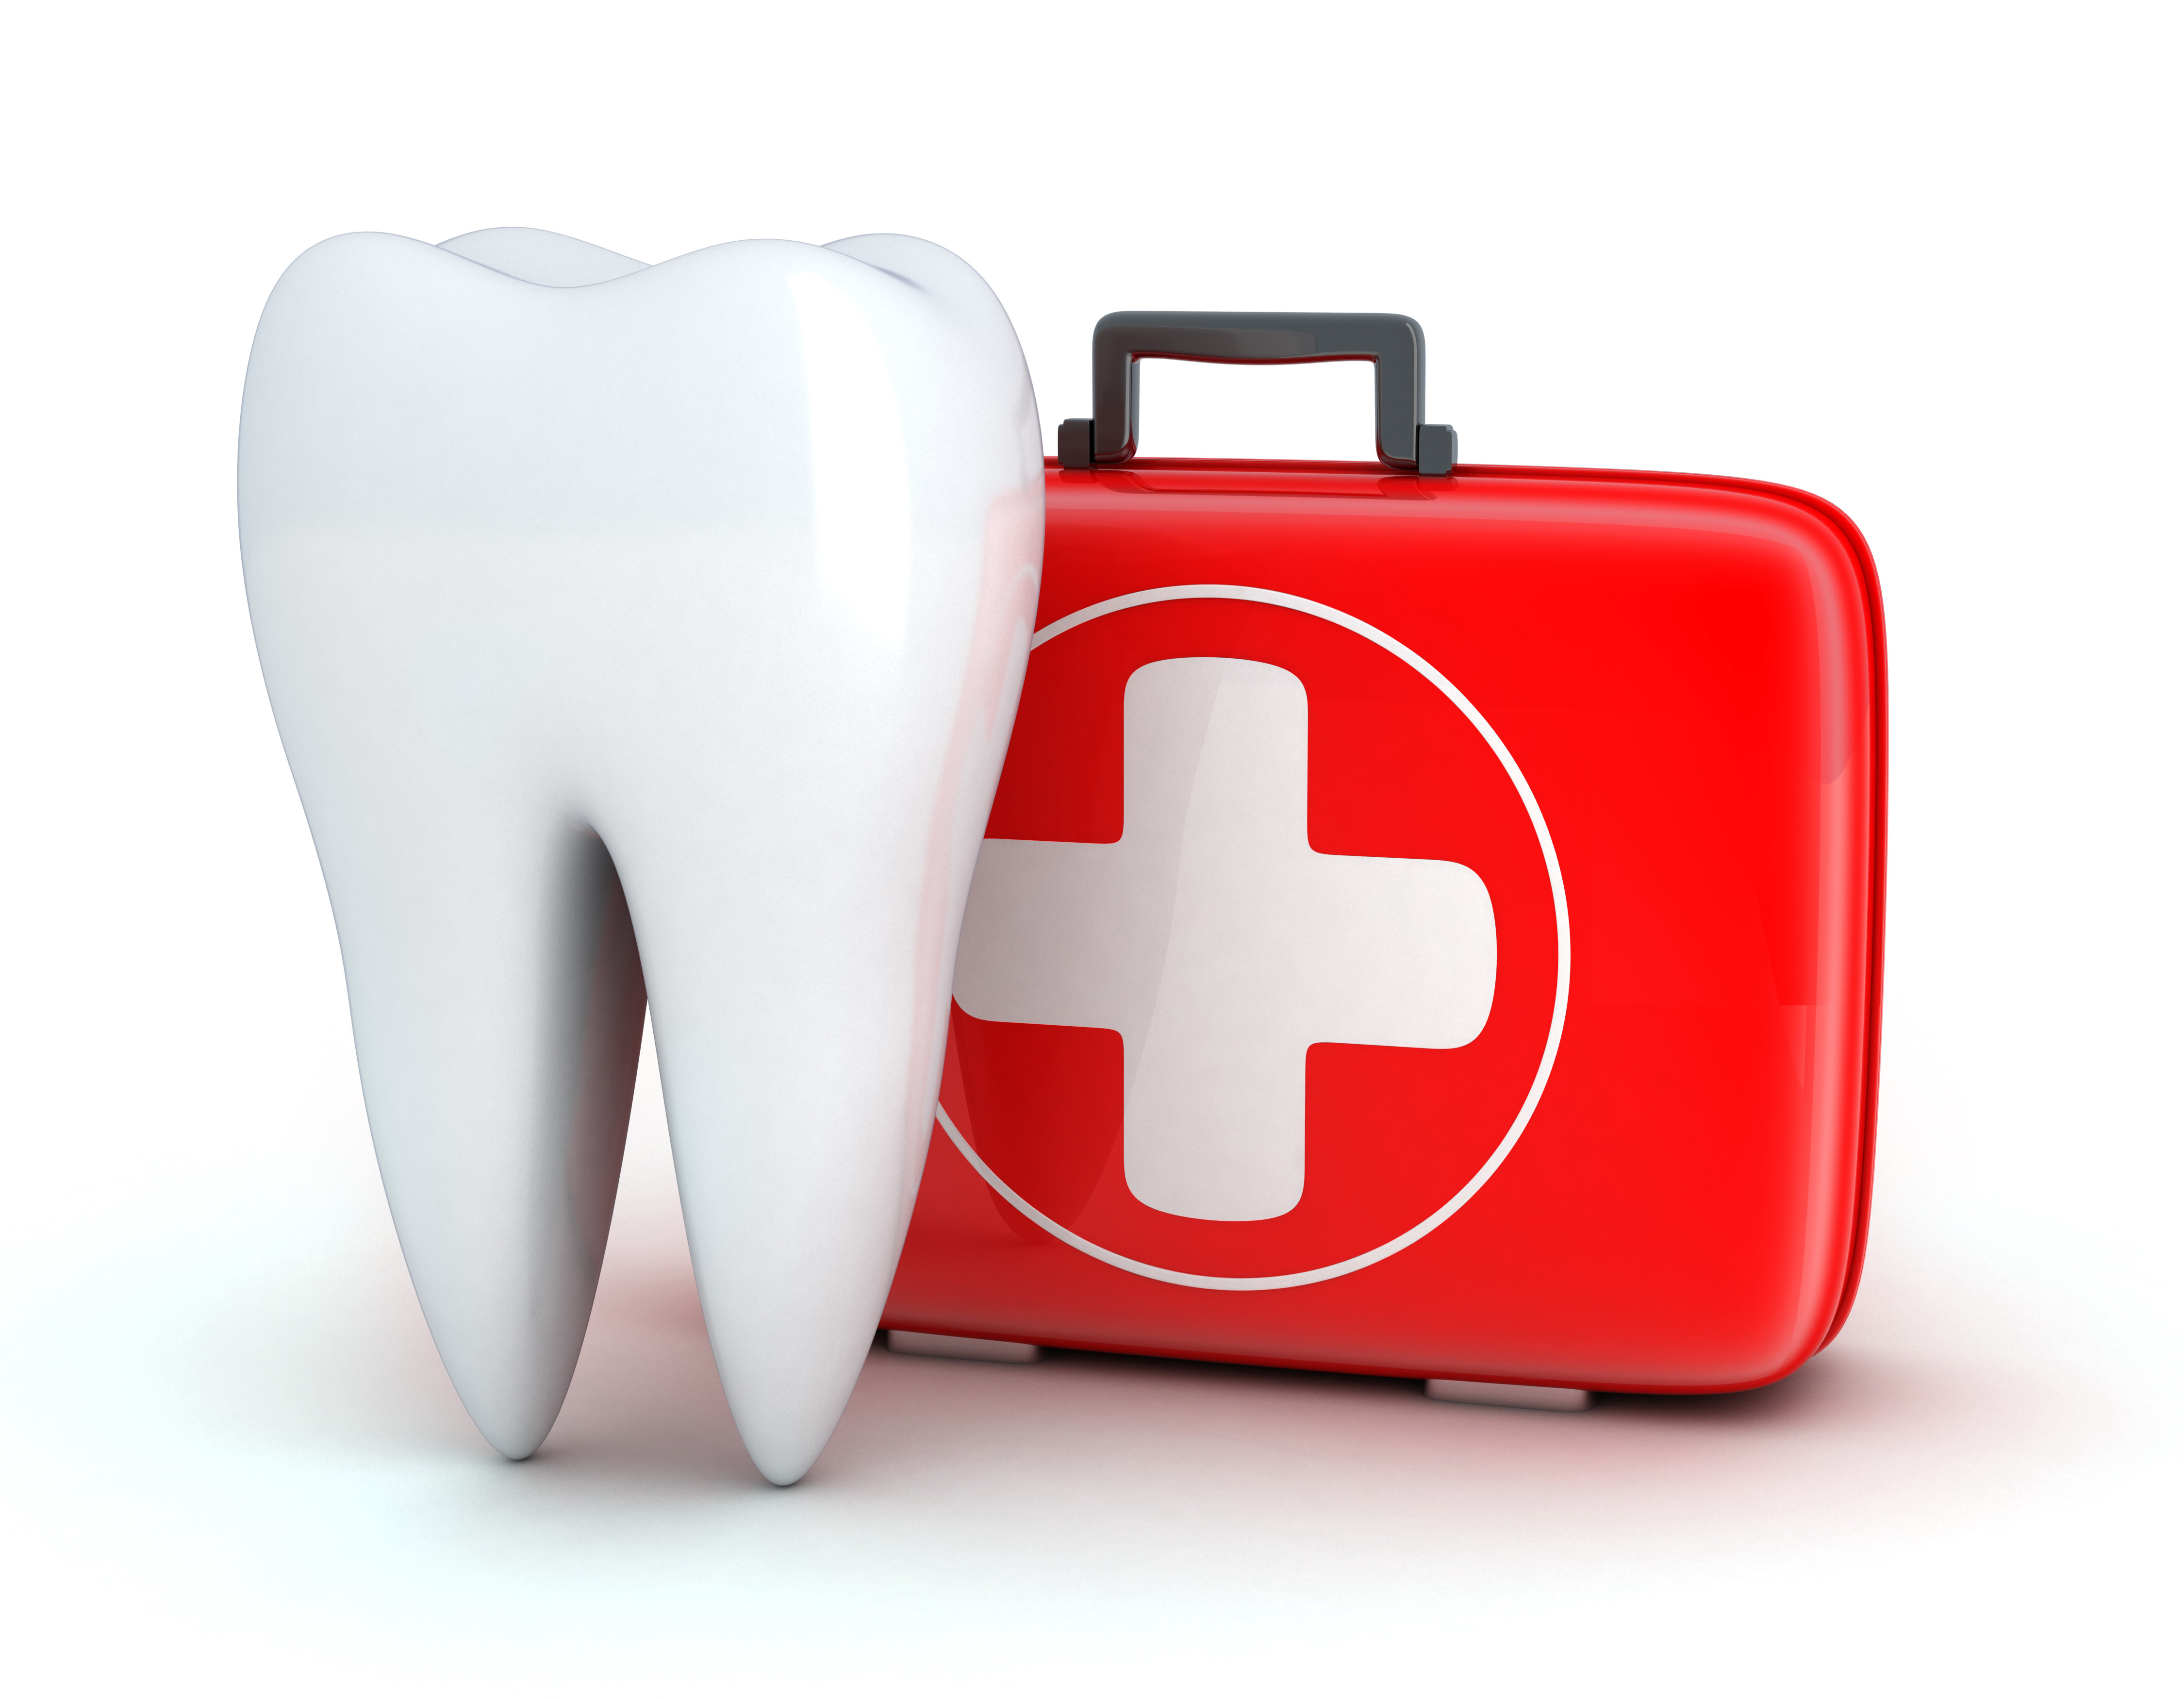 Dental emergency care in Carlisle cumbria